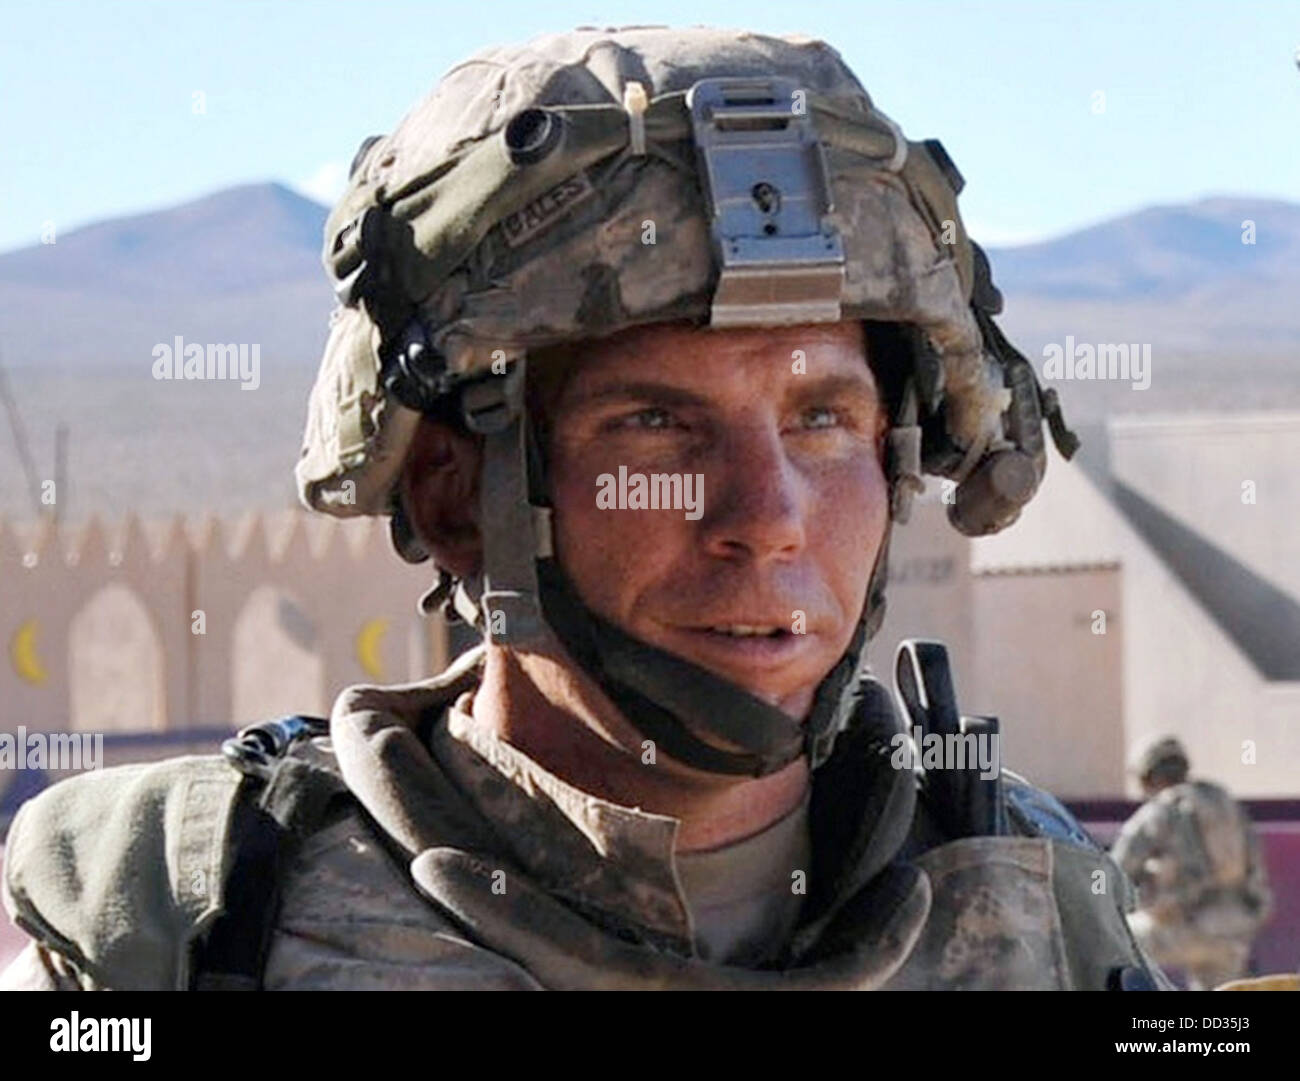 ROBERT BALES US soldier who killed 16 Afghan civilians in Kandahar in March 2012 seen at Fort Irwin Training Centre, - Stock Image